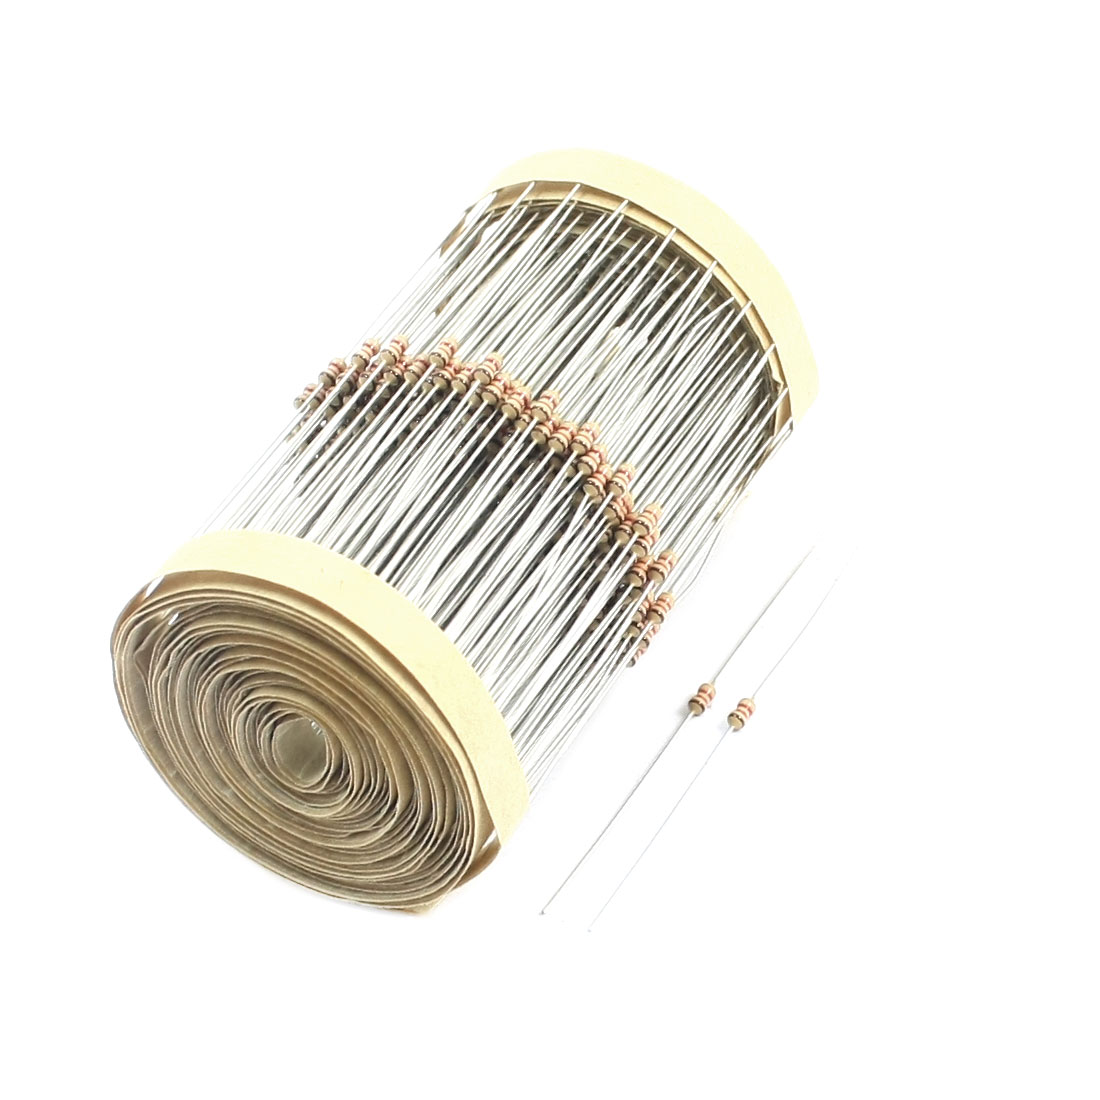 1.2K Ohm 1/8W Power Axial Lead Type Through Hole PCB Surface Mounting Colored Ring Carbon Film Fixed Resistors 400 Pcs